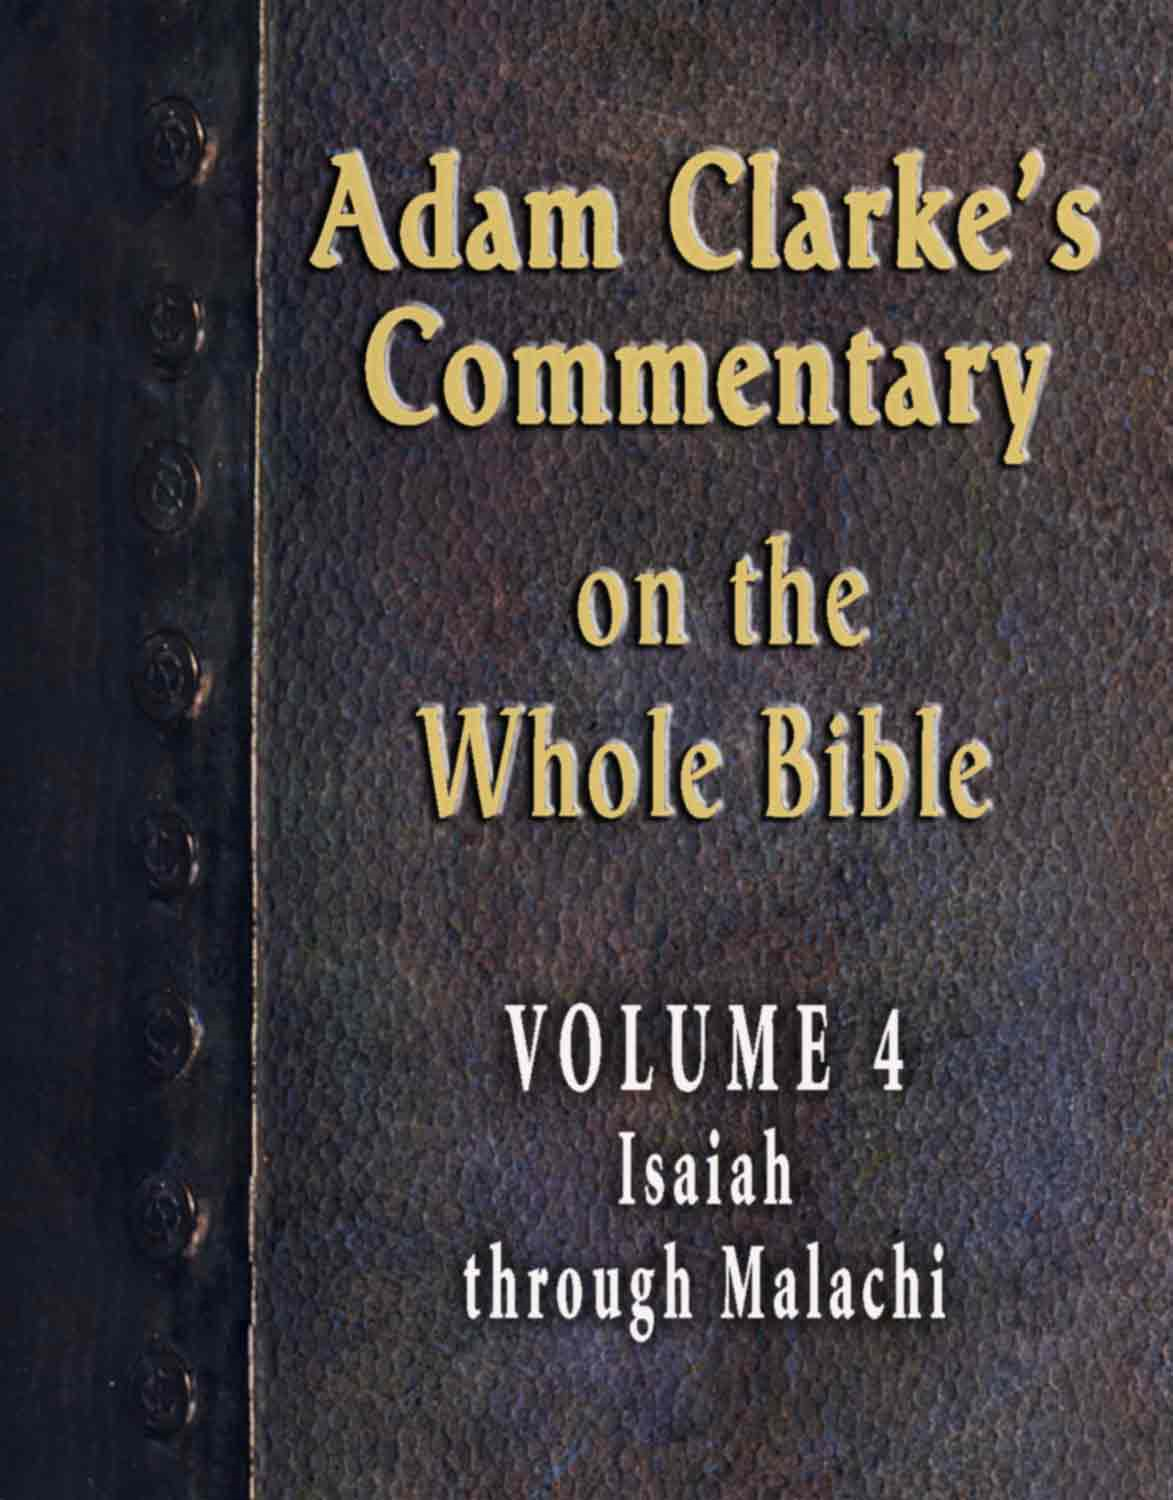 Adam Clarke's Commentary on the Whole Bible-Volume 4-Isaiah through Malachi